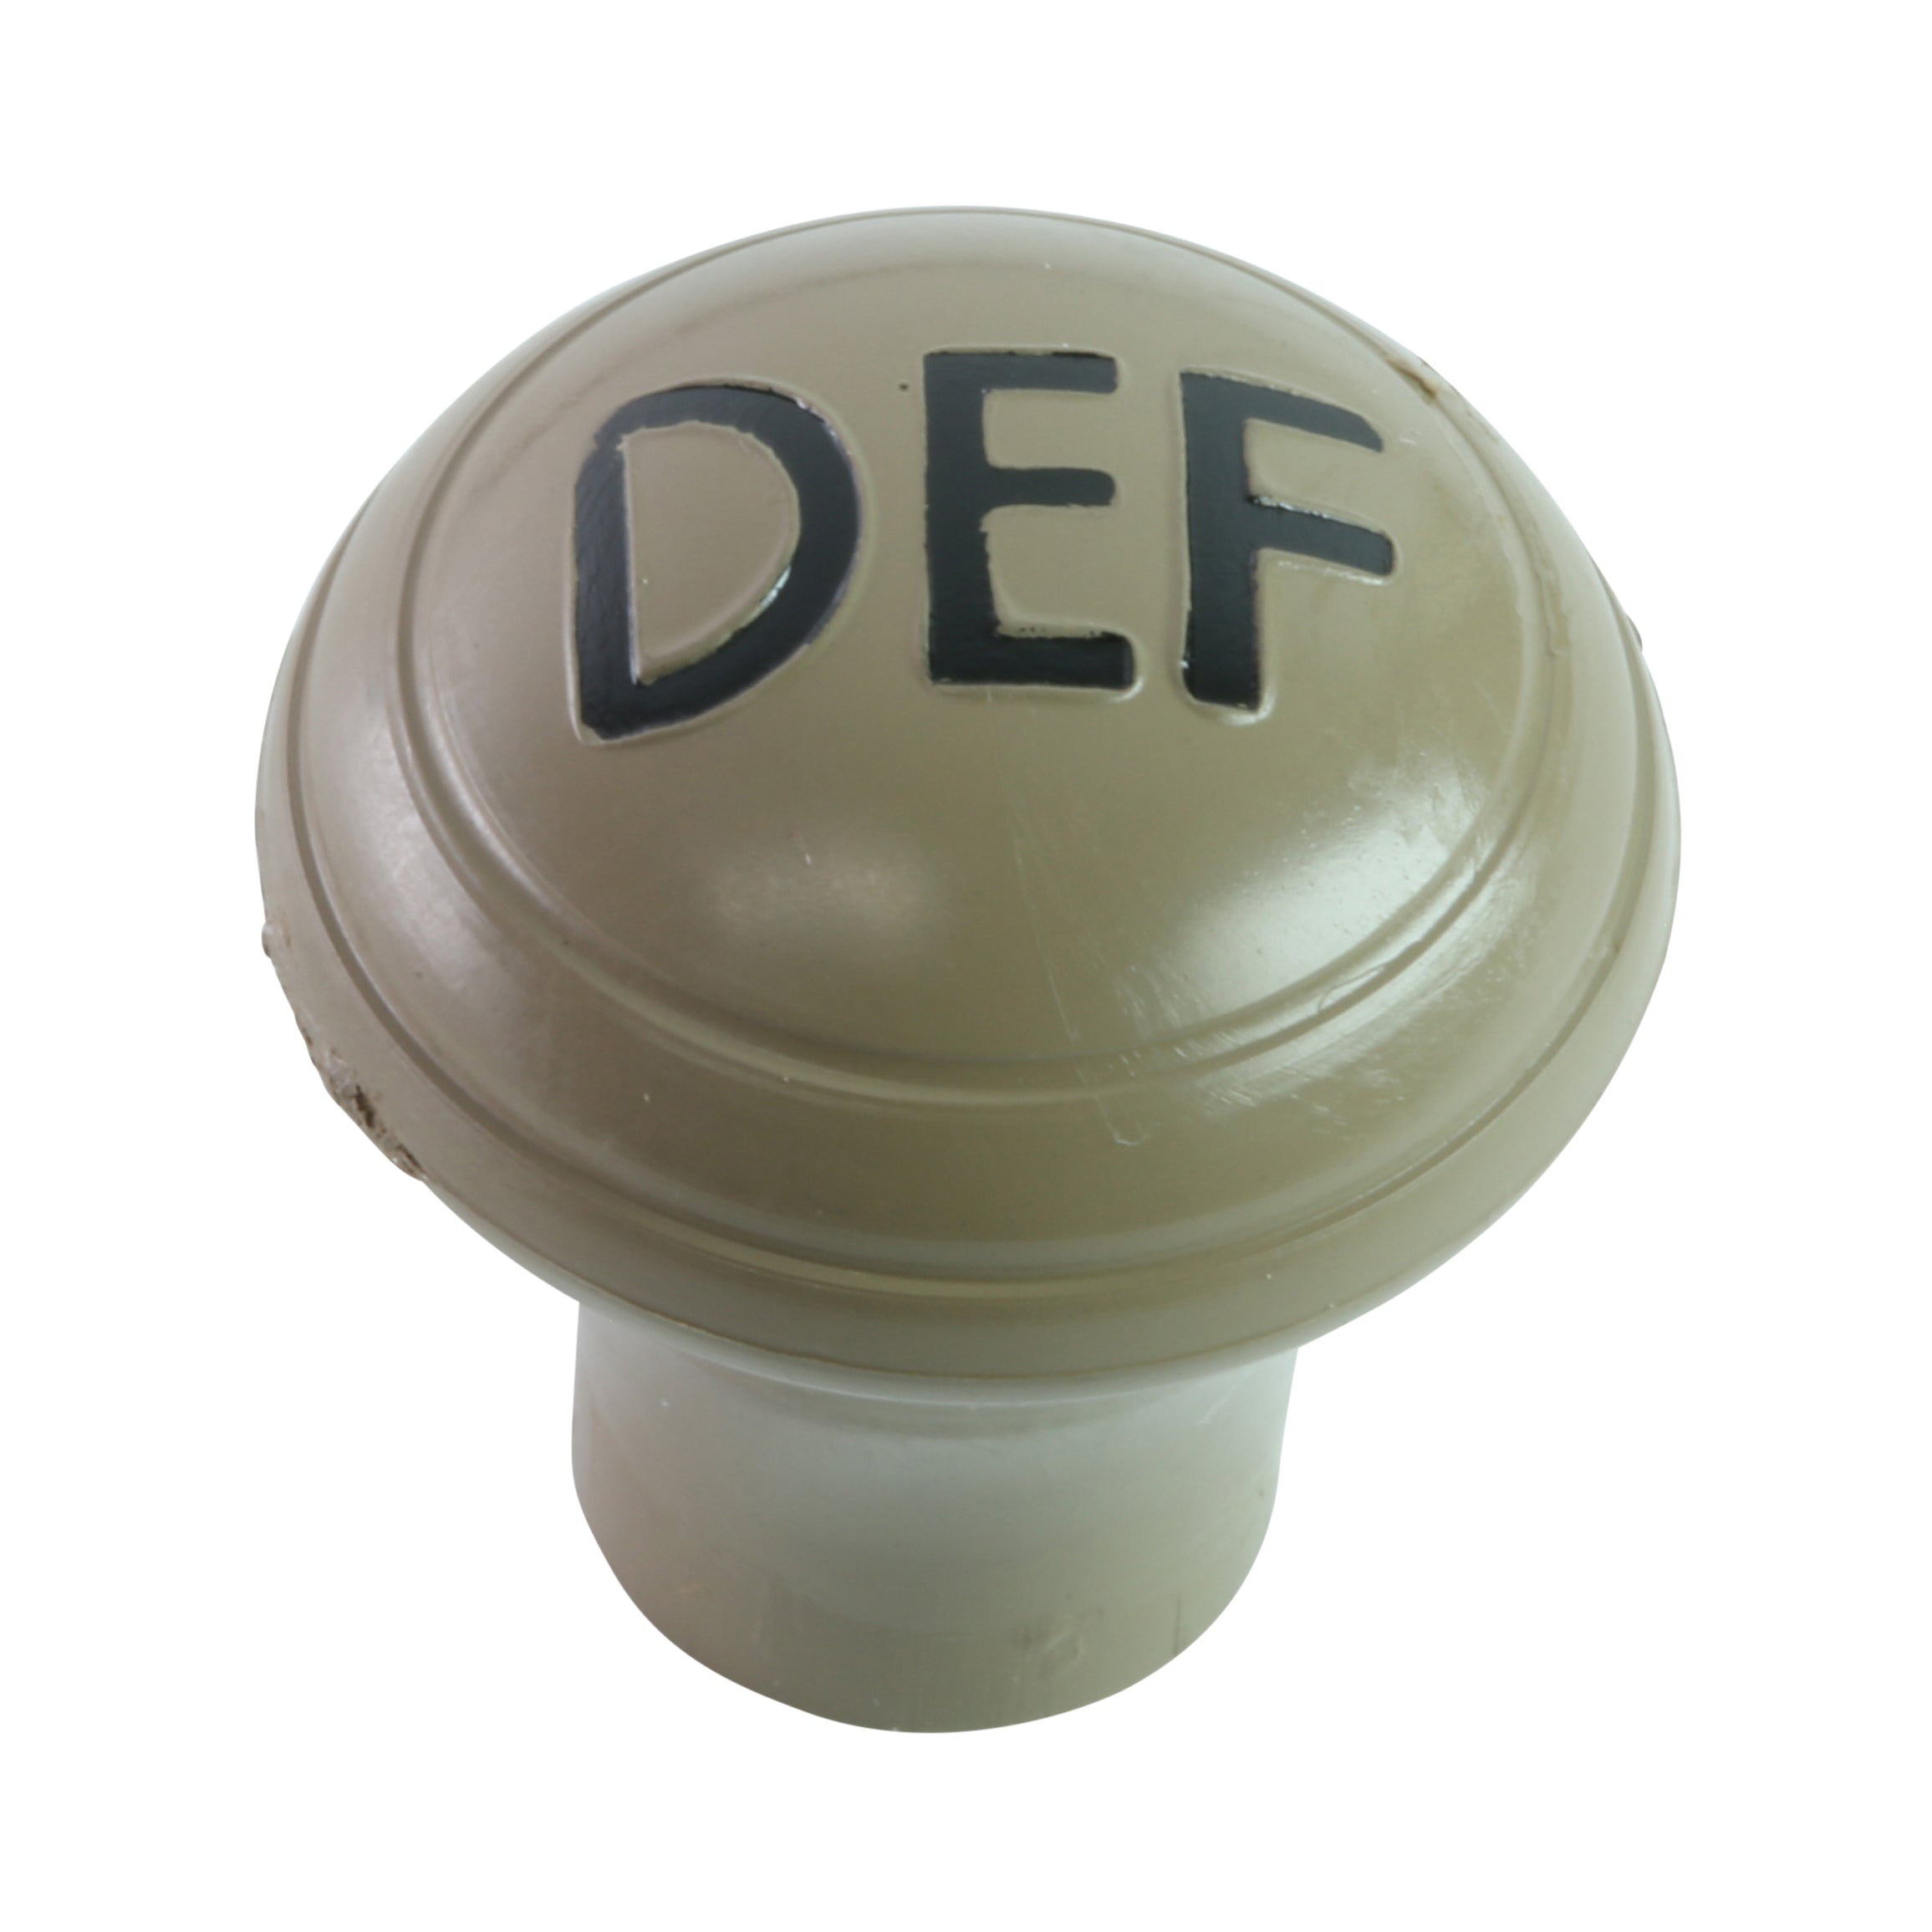 Hot Water Heater Defroster Knob • 1947-48